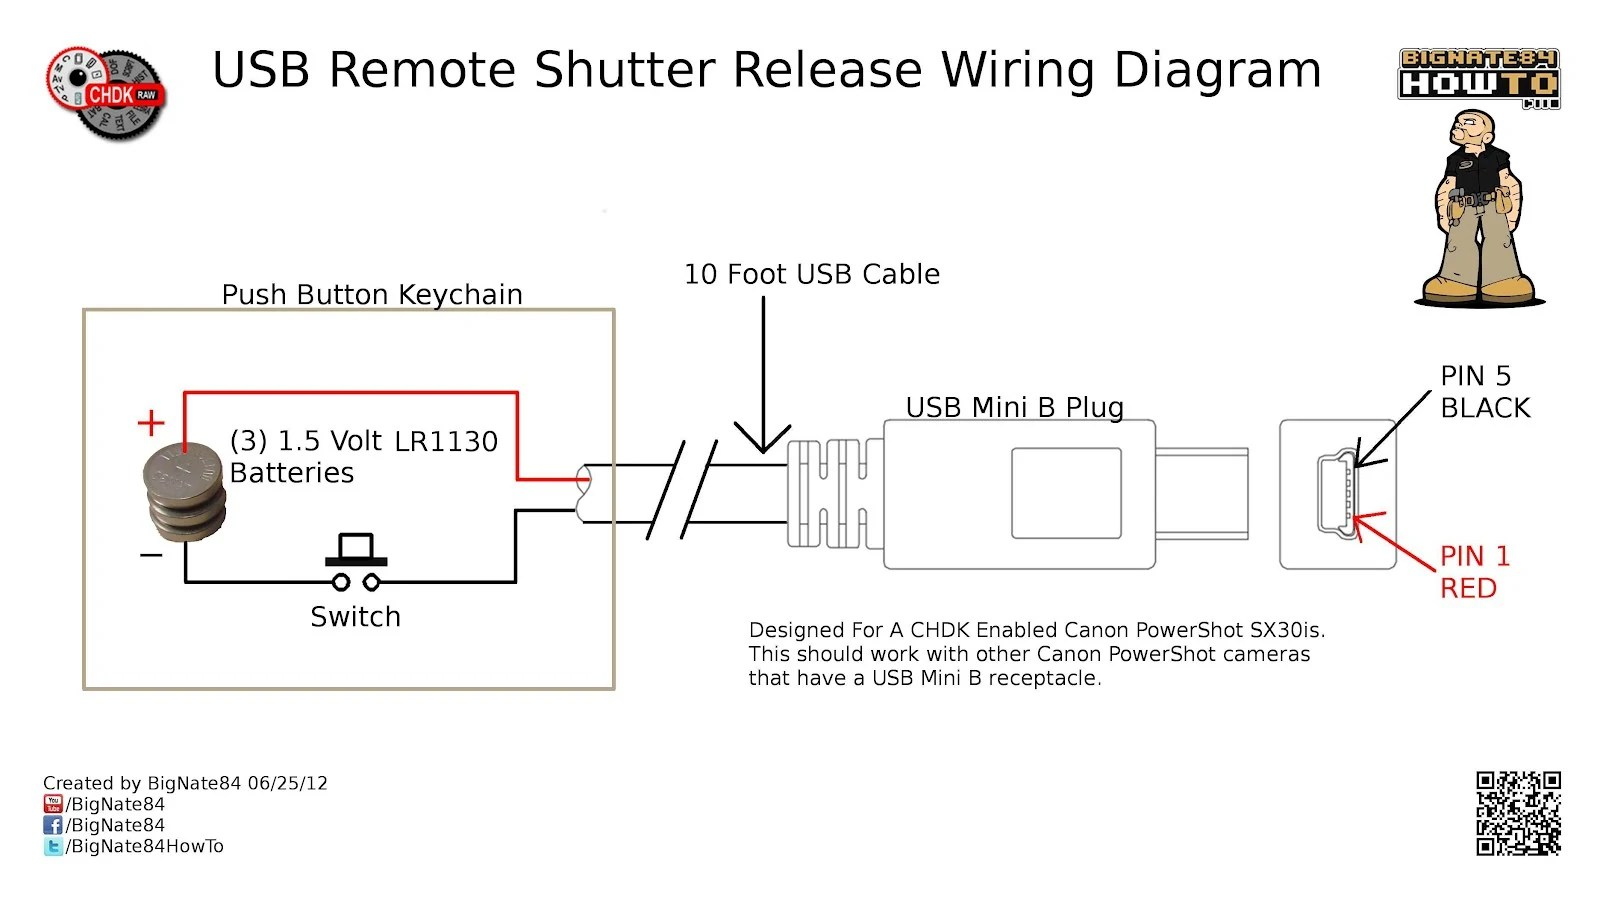 0001 usb remote shutter wiring diagram 1 jpeg [ 1600 x 899 Pixel ]